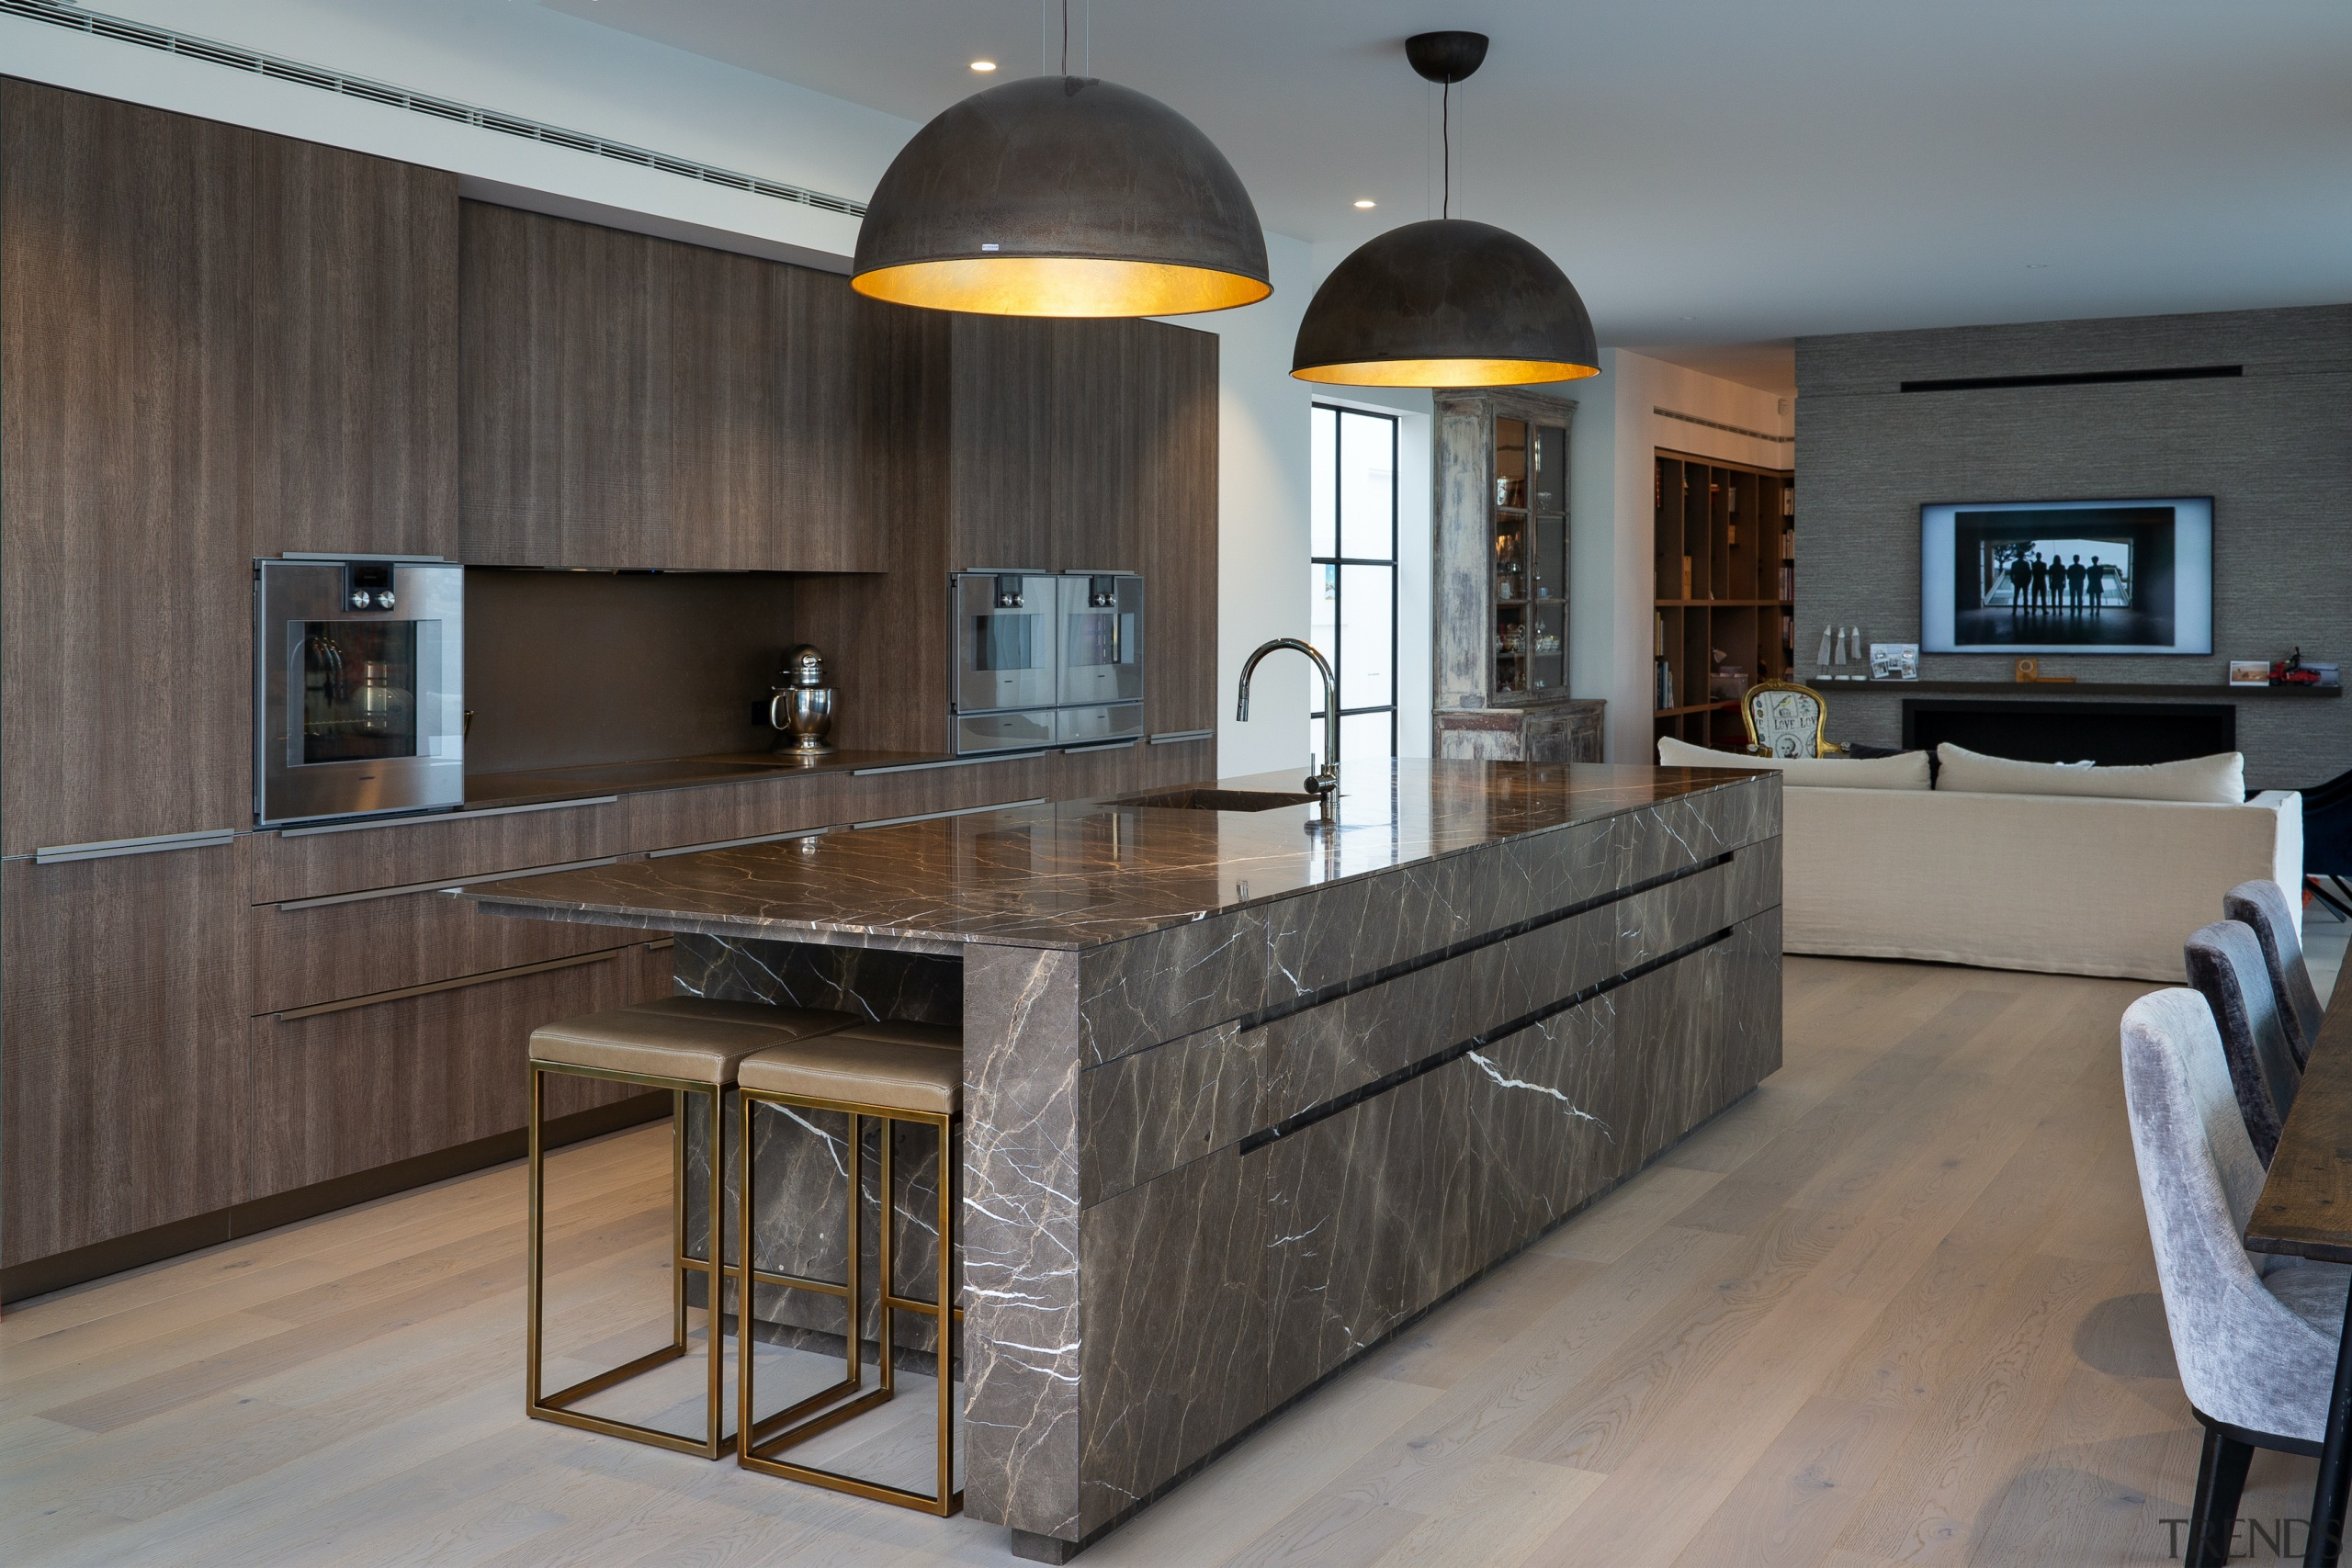 The timber veneer perimeter cabinetry avoids detracting from